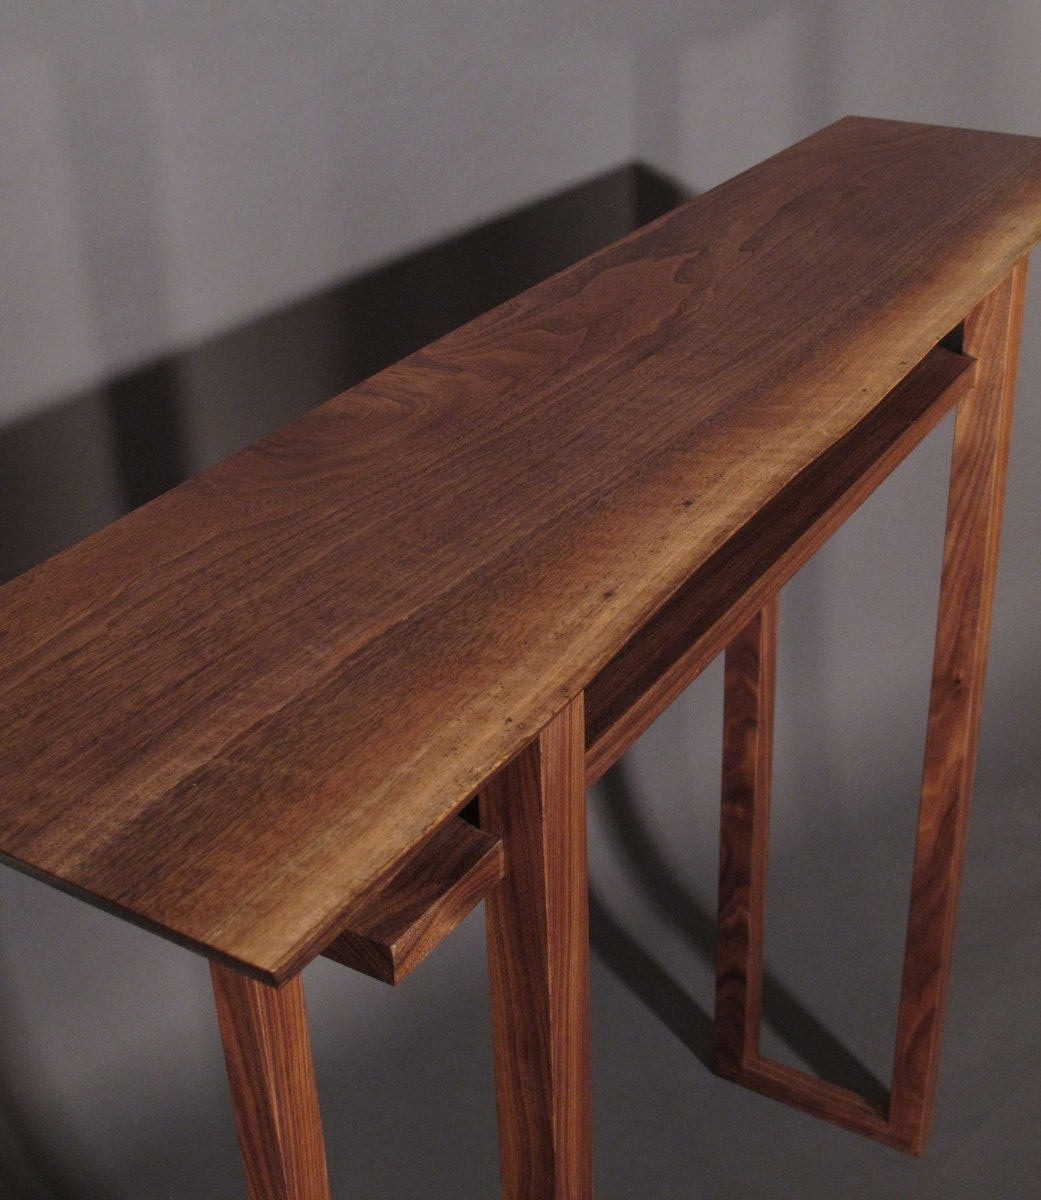 Live Edge Hall Table Handmade Wood Furniture for Narrow Hall